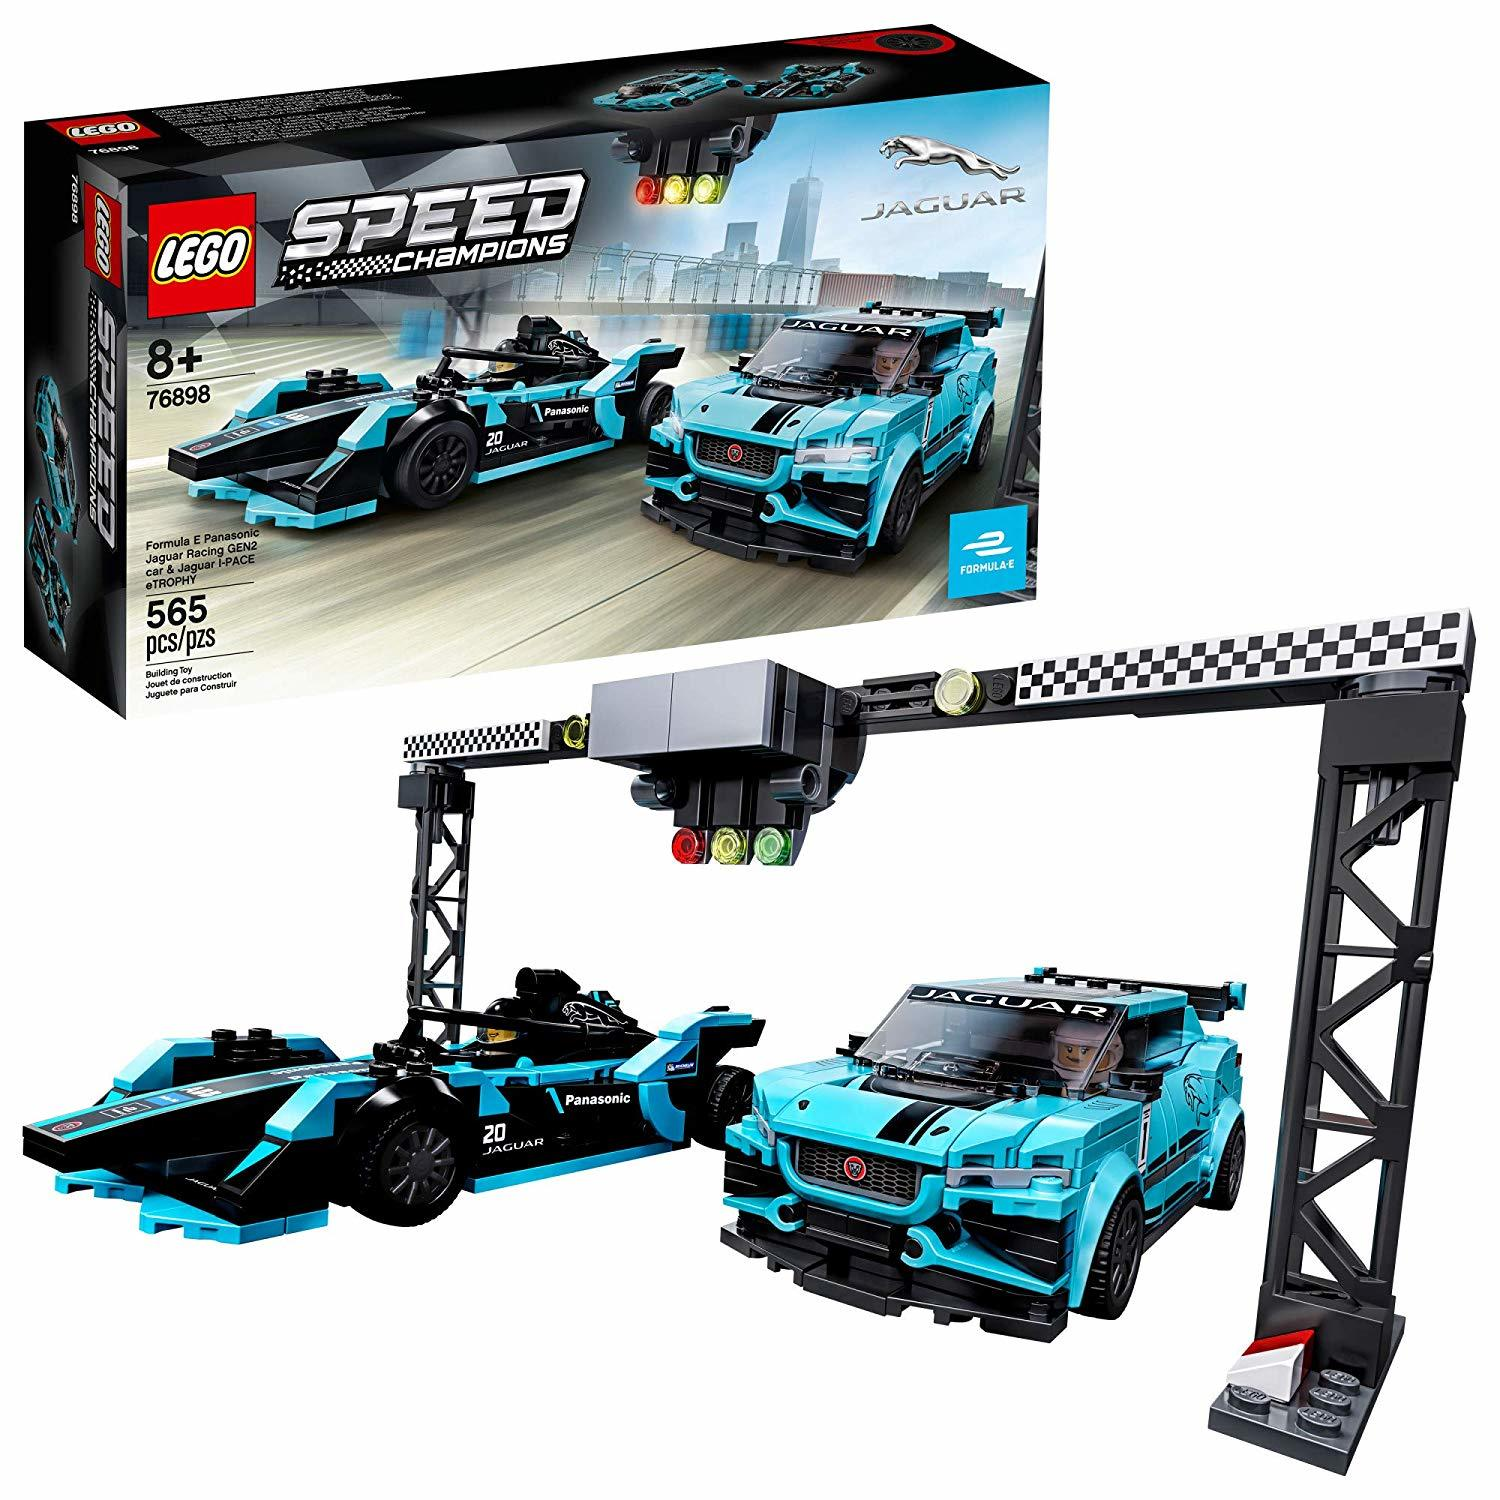 LEGO Speed Champions: Formula E Panasonic Jaguar Racing GEN2 car & Jaguar I-PACE eTROPHY - (76898) image